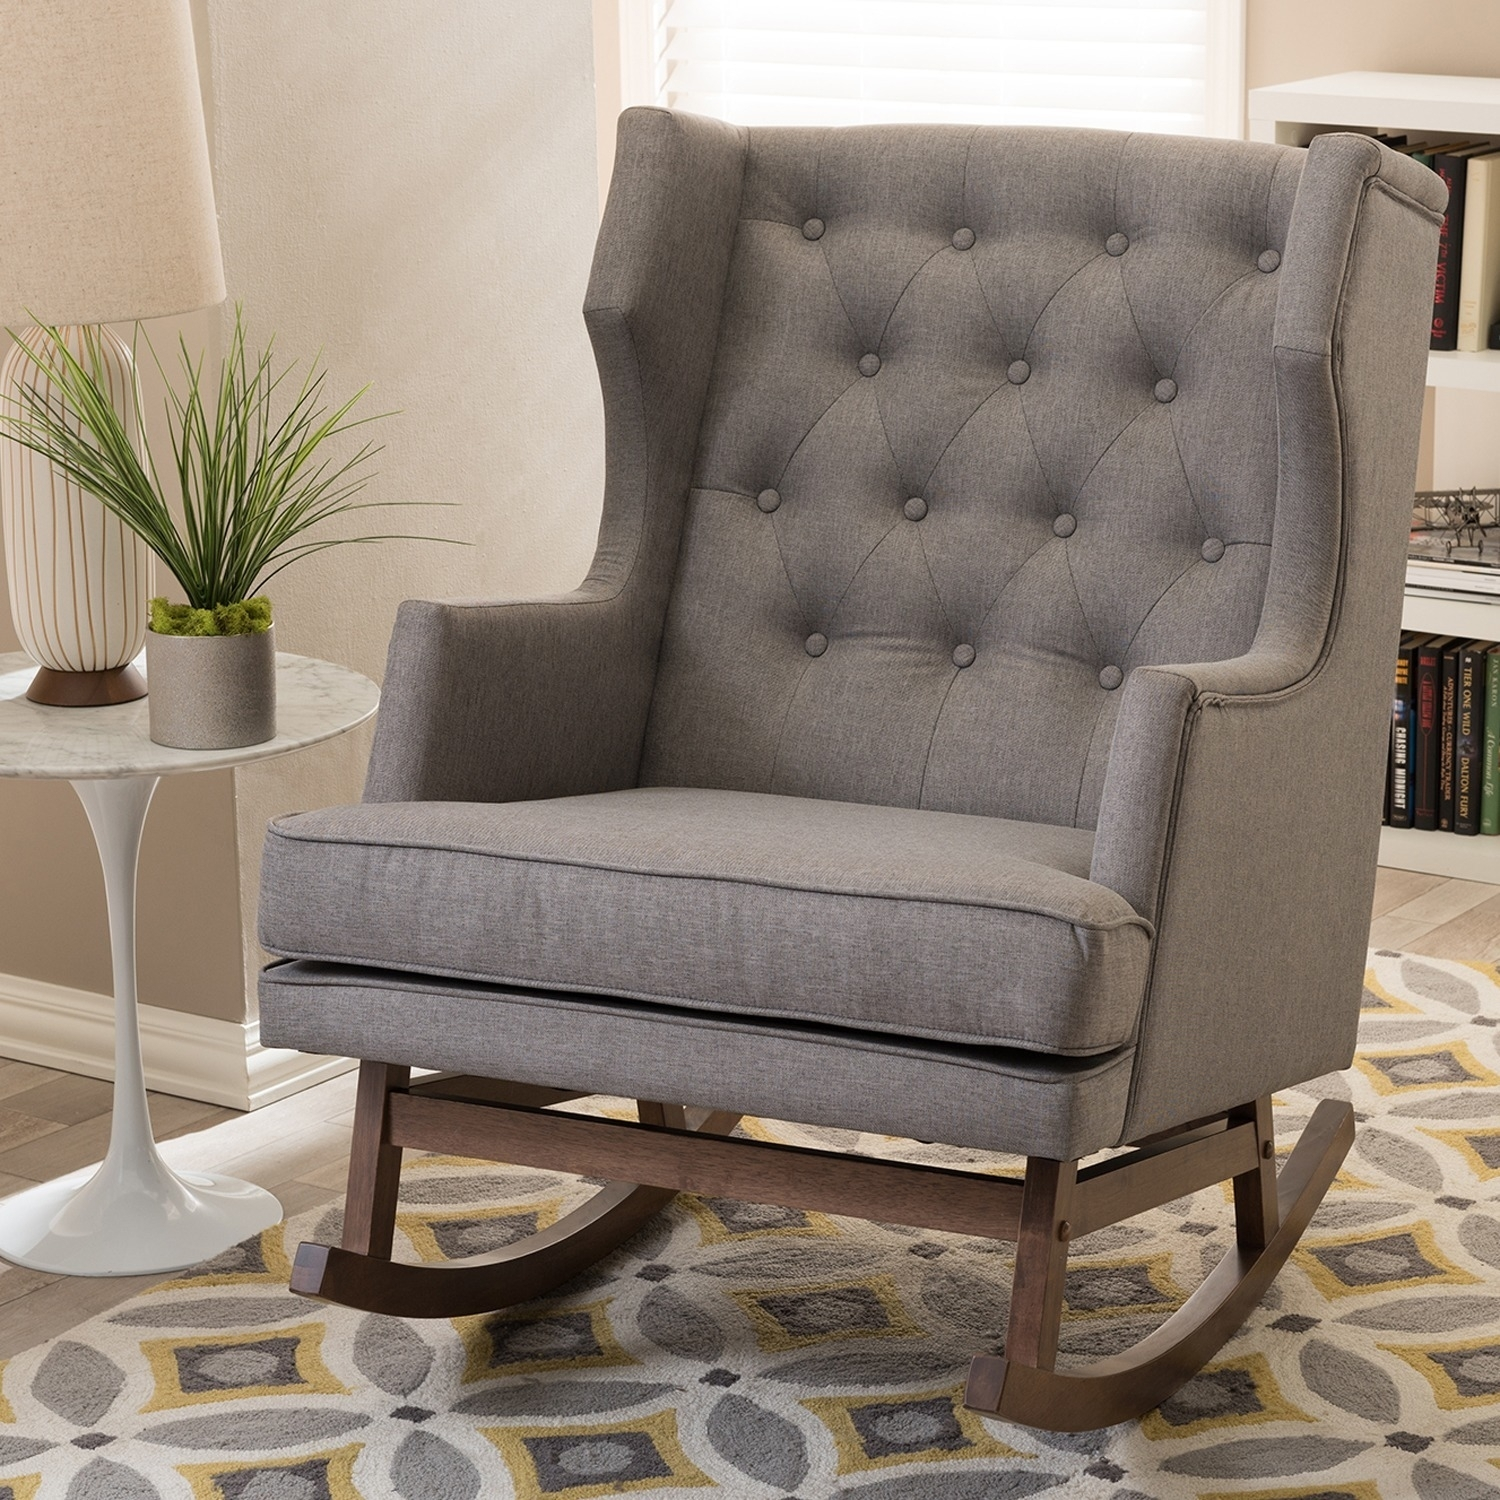 Buy Rocking Chairs Living Room Chairs Online At Overstock | Our With Regard To Rocking Chairs For Living Room (#3 of 15)